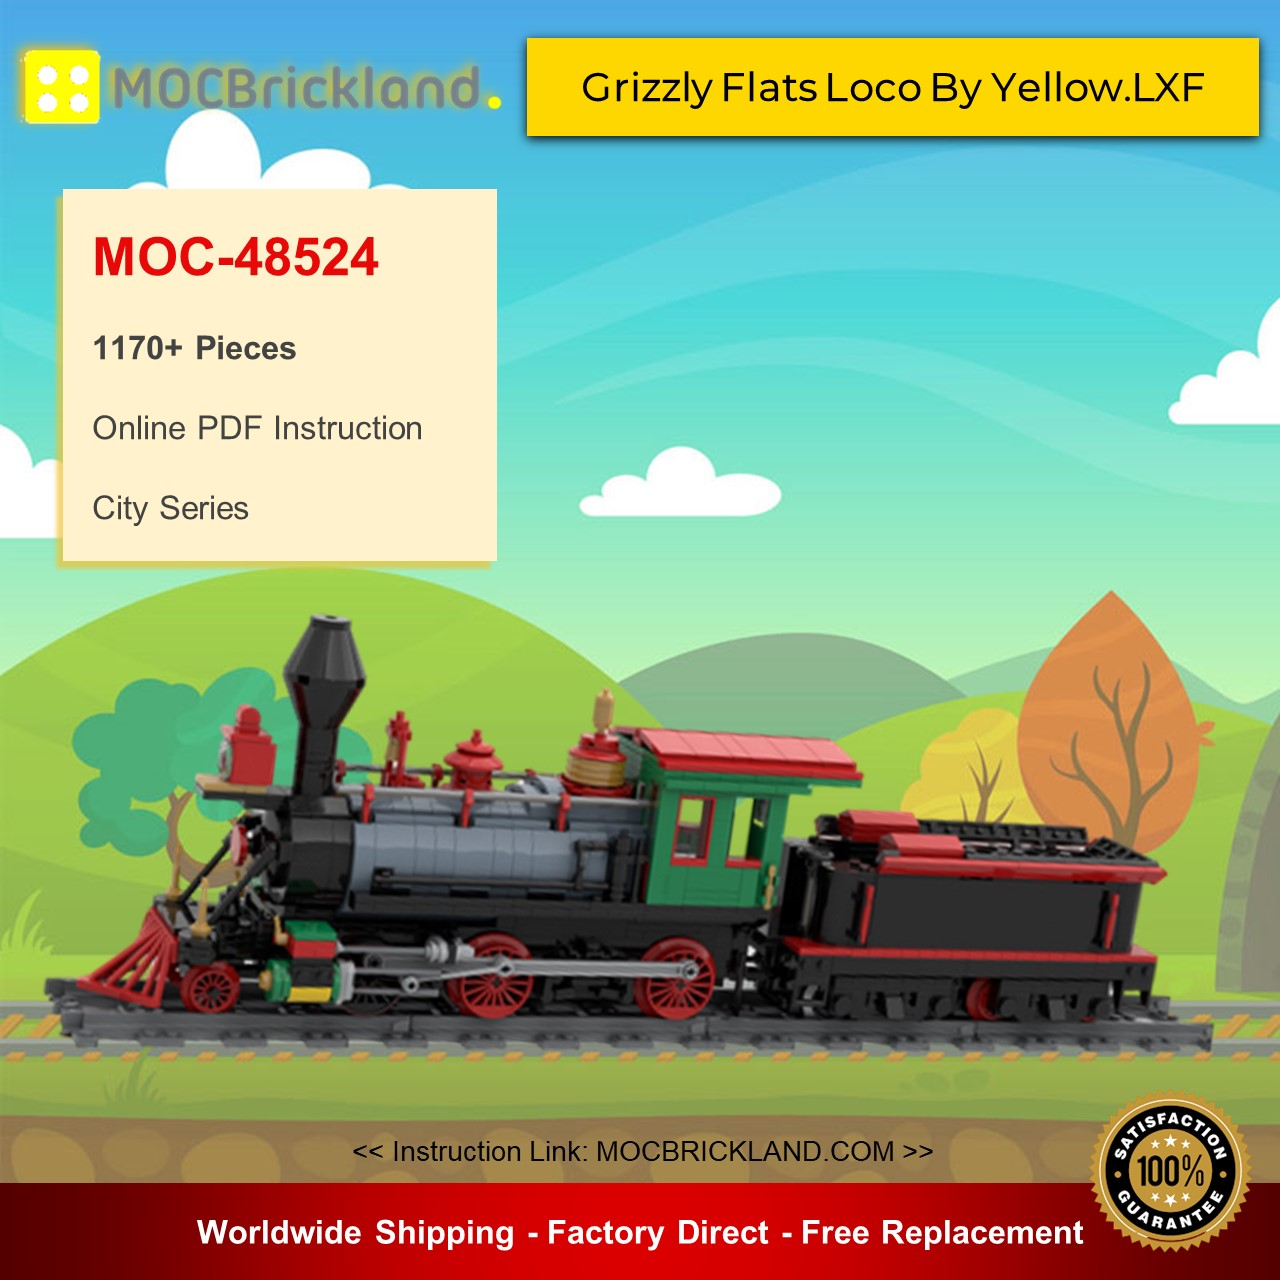 City MOC-48524 Grizzly Flats Loco By Yellow.LXF MOCBRICKLAND